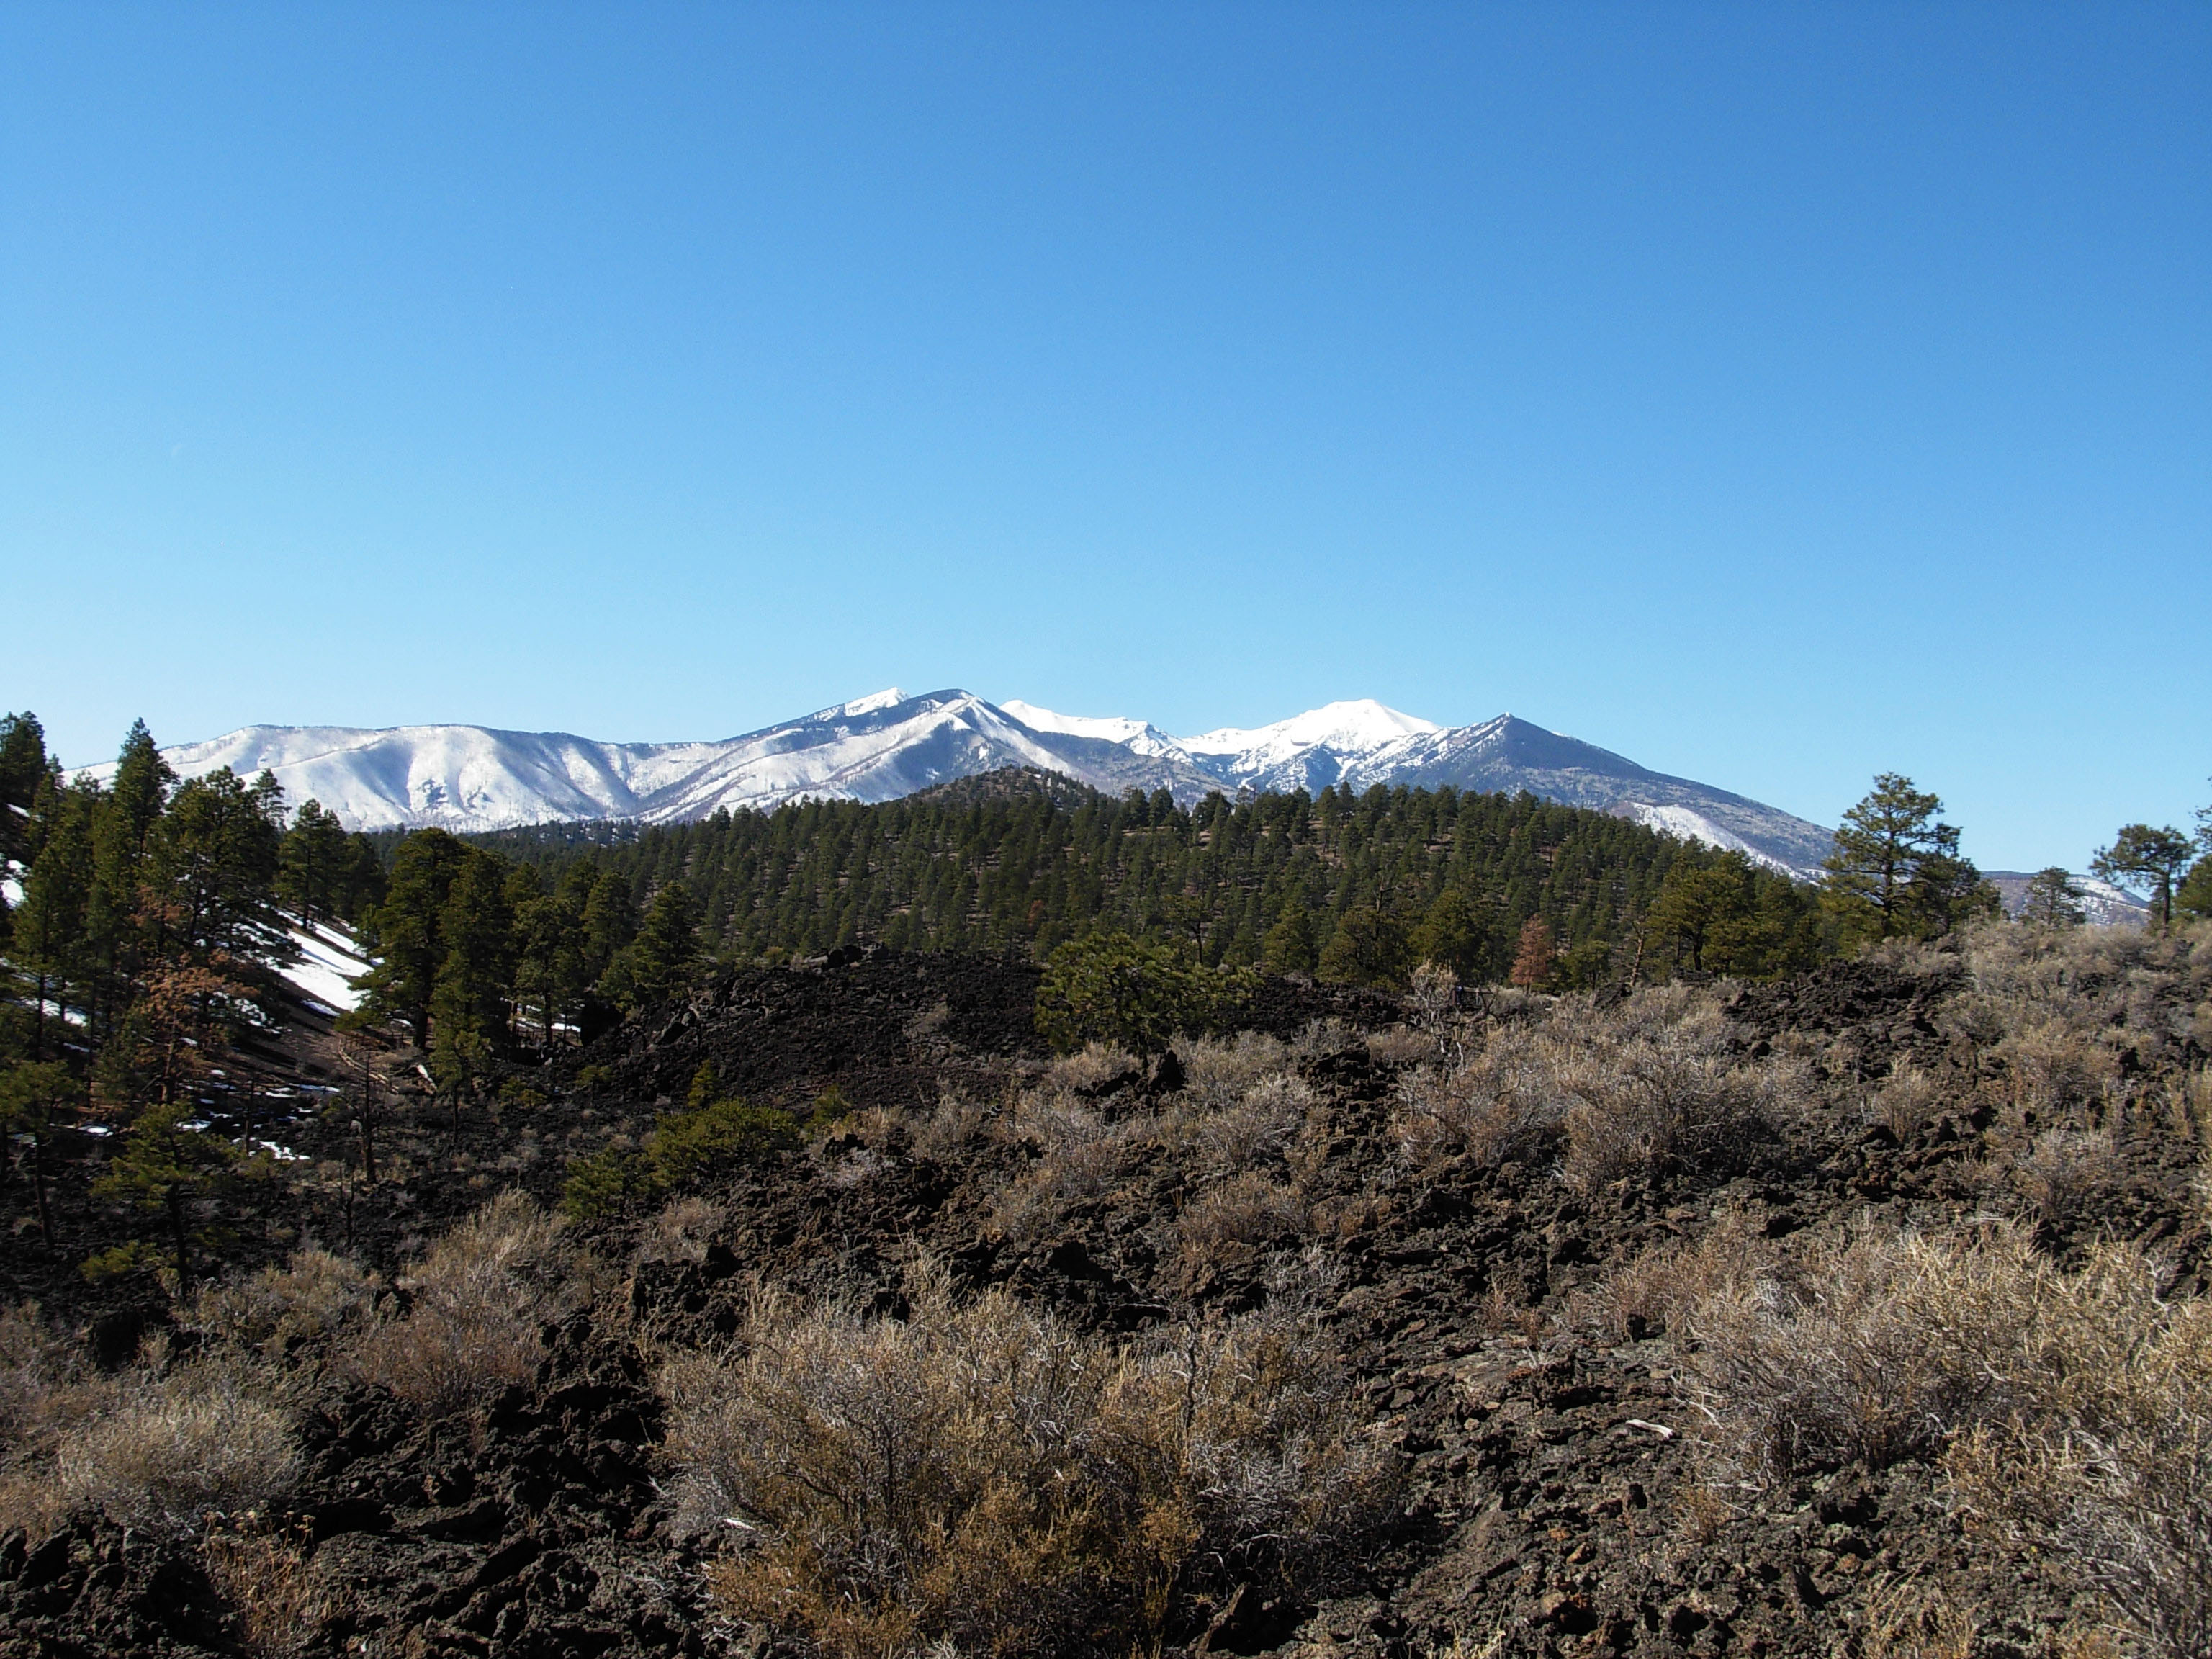 The San Francisco Peaks began as a stratovolcano